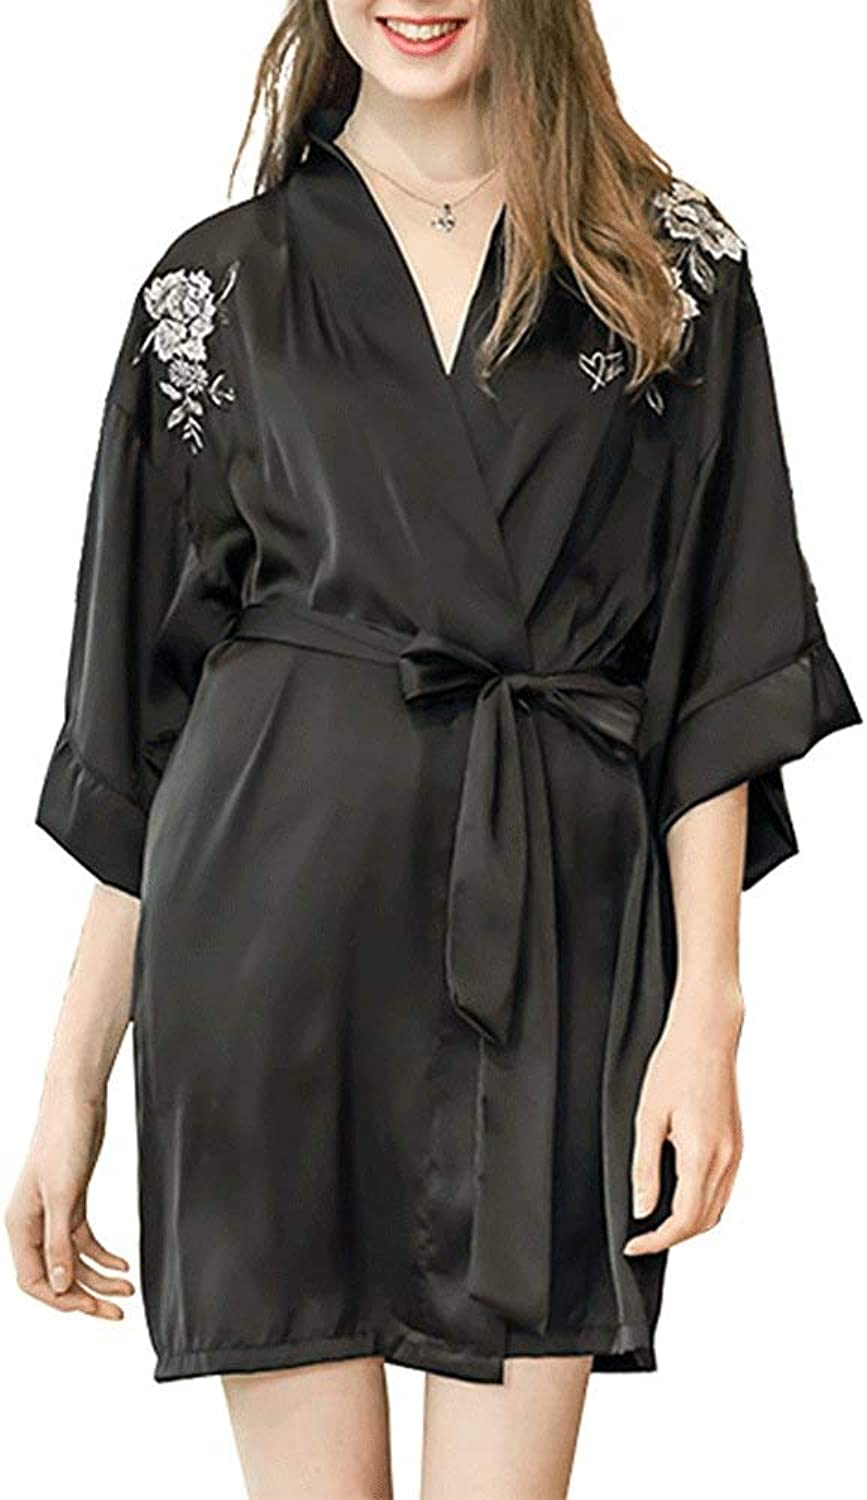 Personalised Dressing Gown Women,Women's Pure color Kimono Robes Satin Nightwear Bridesmaids Short Style with Blossom,BlackL